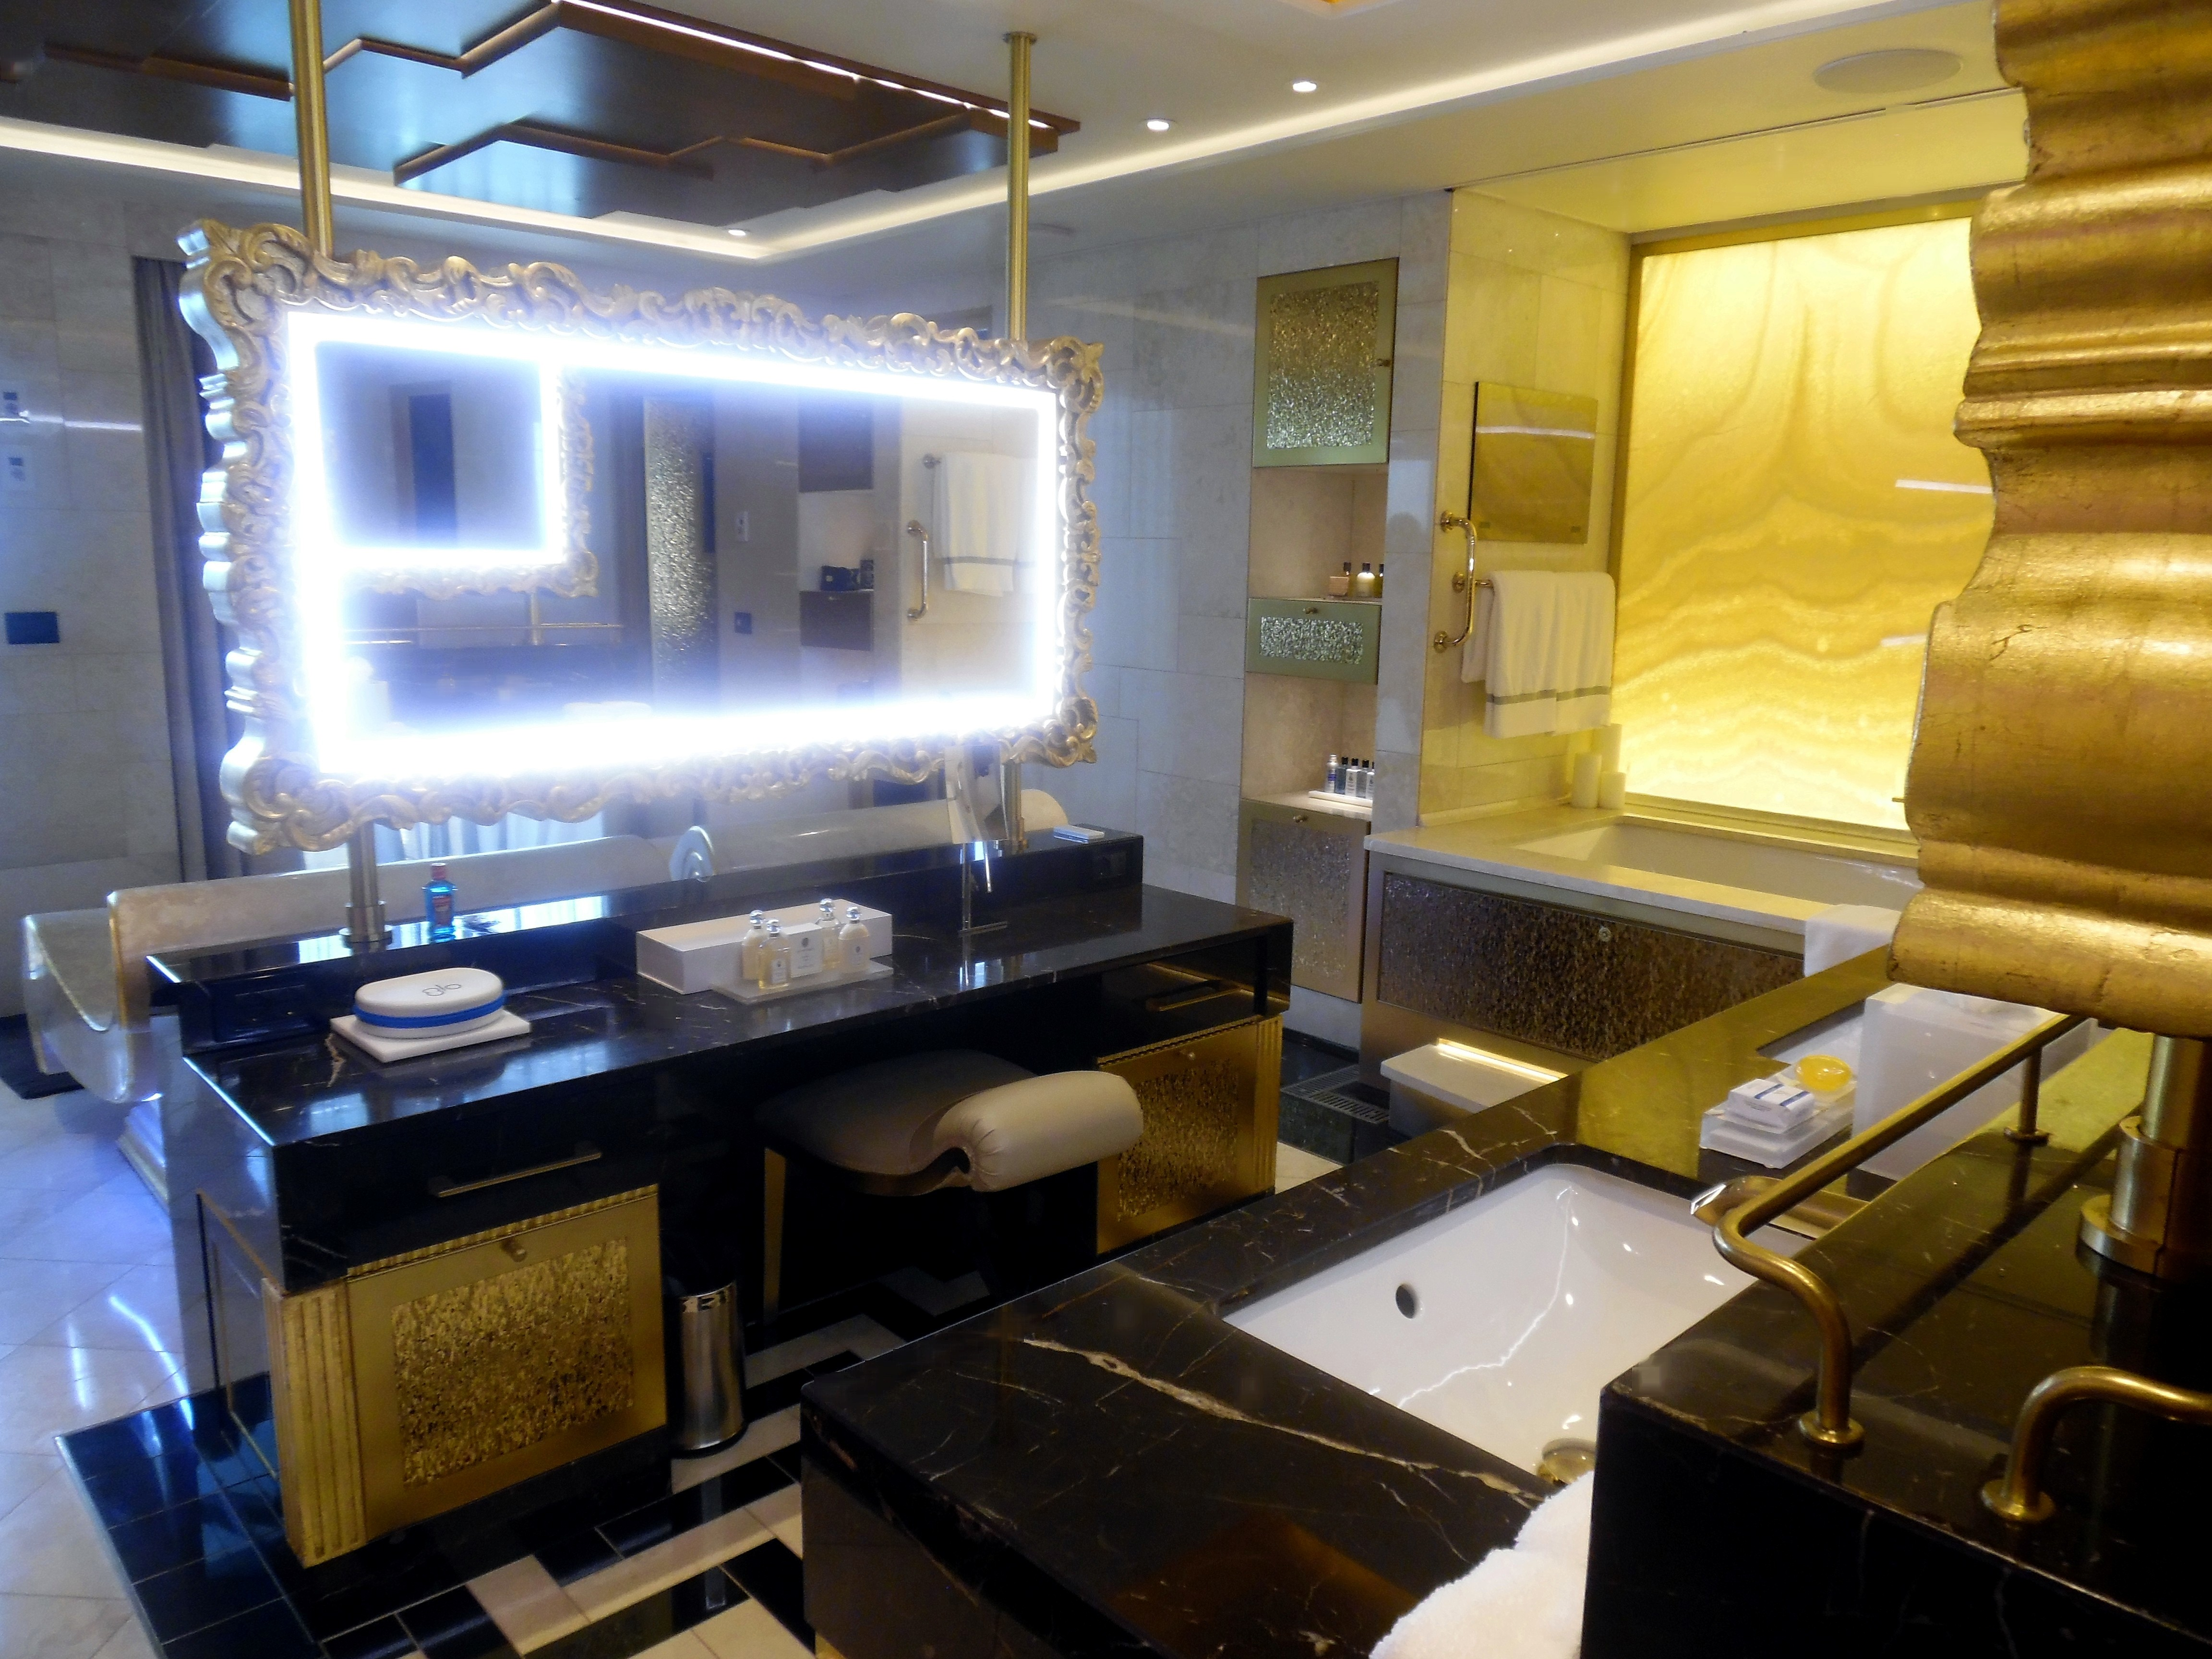 Master Bedroom Complex: The master bathroom has a large make-up counter and, opposite that, dual sinks.